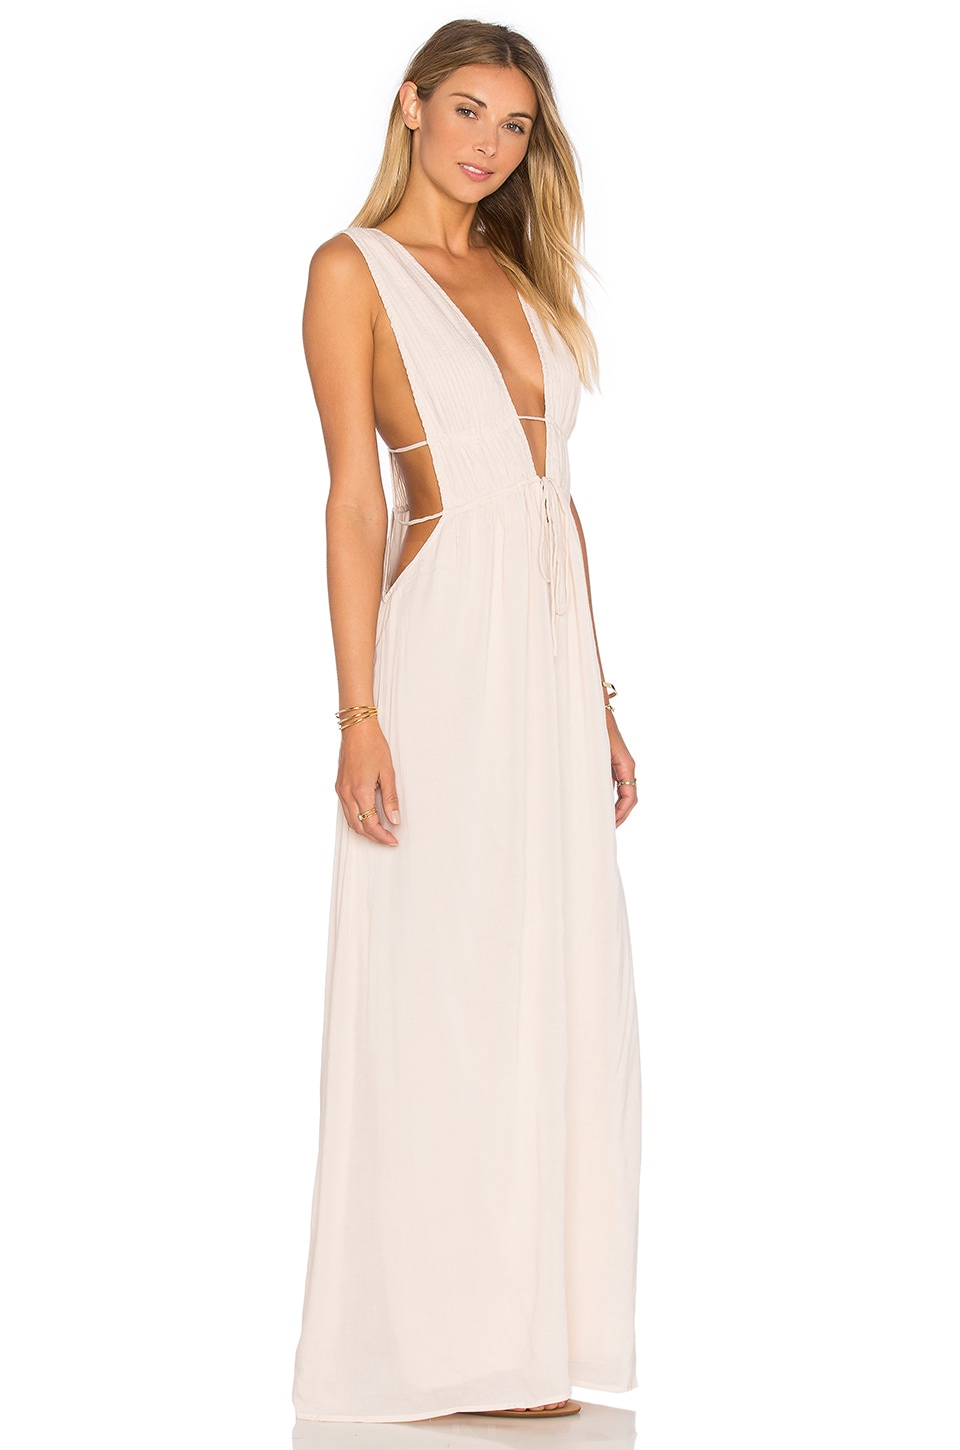 Indah Titanium Deep V Cutout Maxi Dress in Sand | REVOLVE